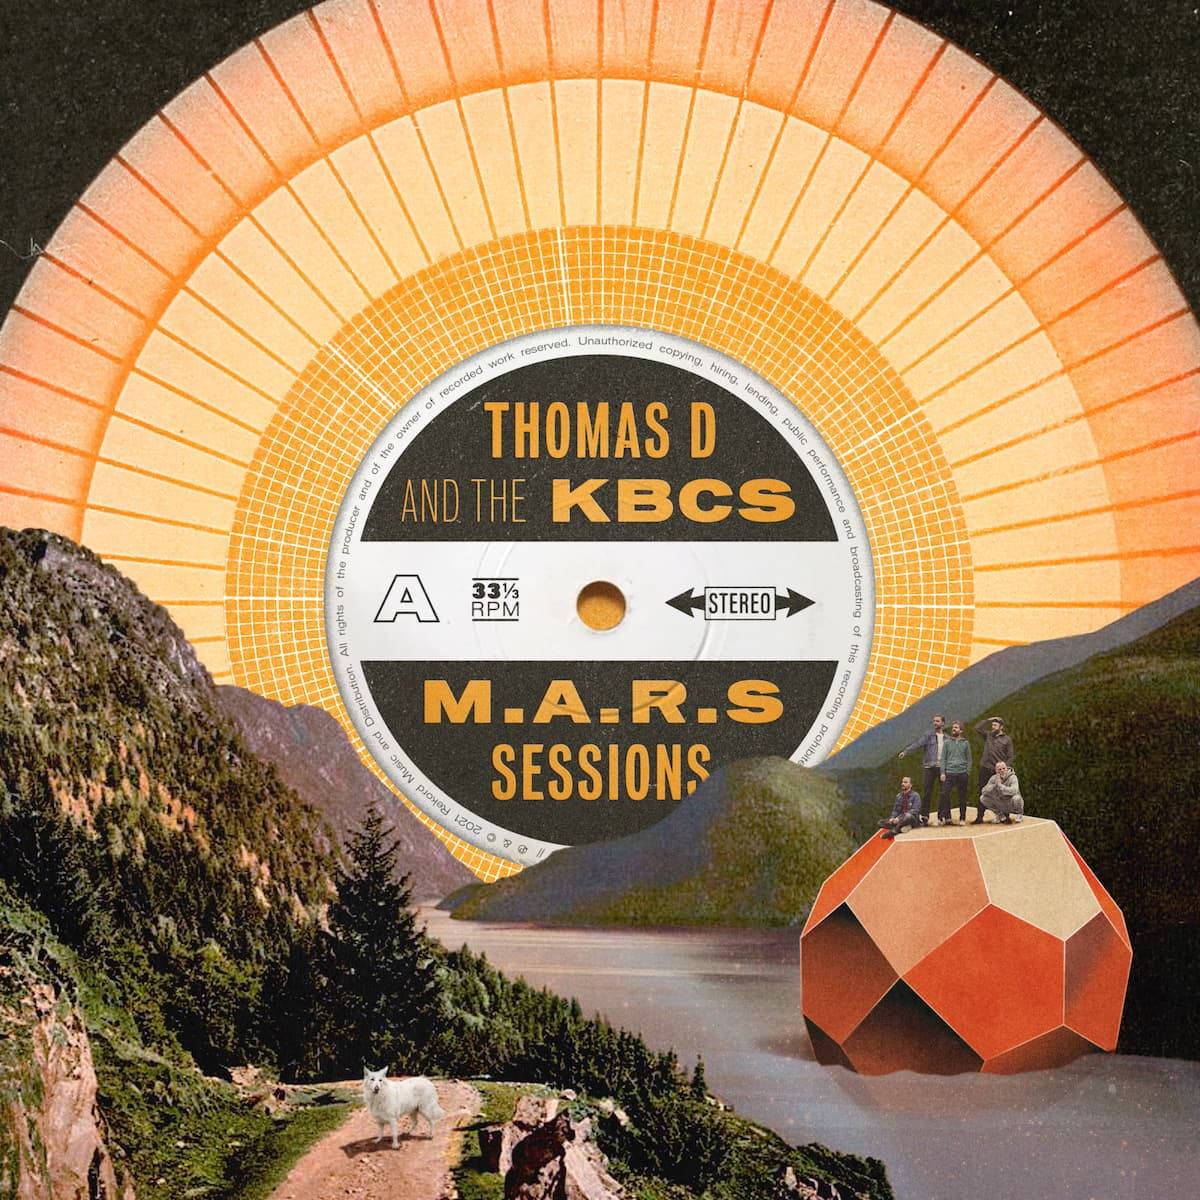 Thomas D and the KBCS -THE M.A.R.S SESSIONS | Musikvideo 'Show' - Albumtipp